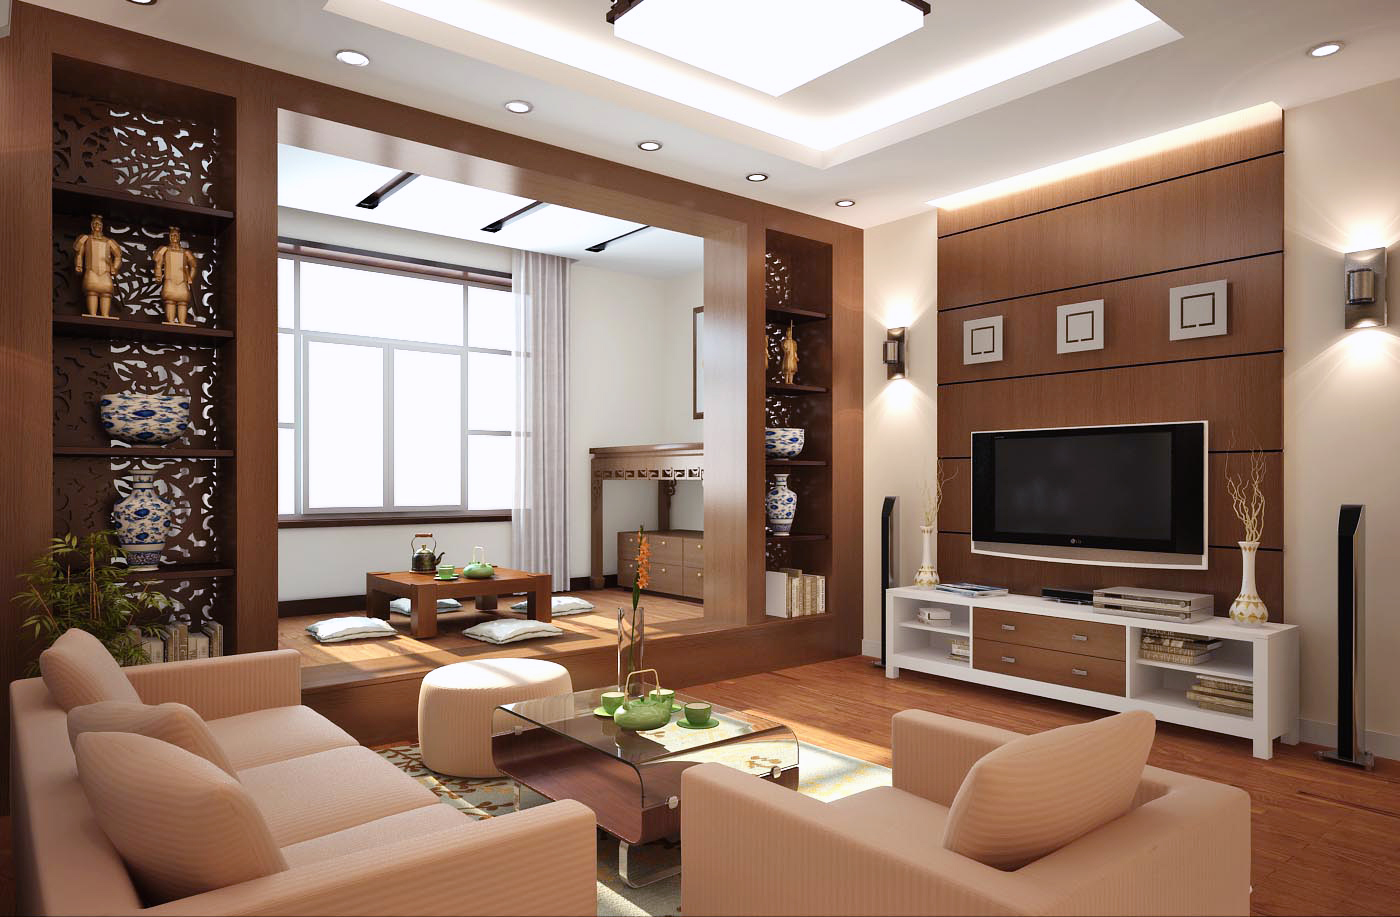 Interior designers in bangalore 4 things that for Interior designs in bangalore